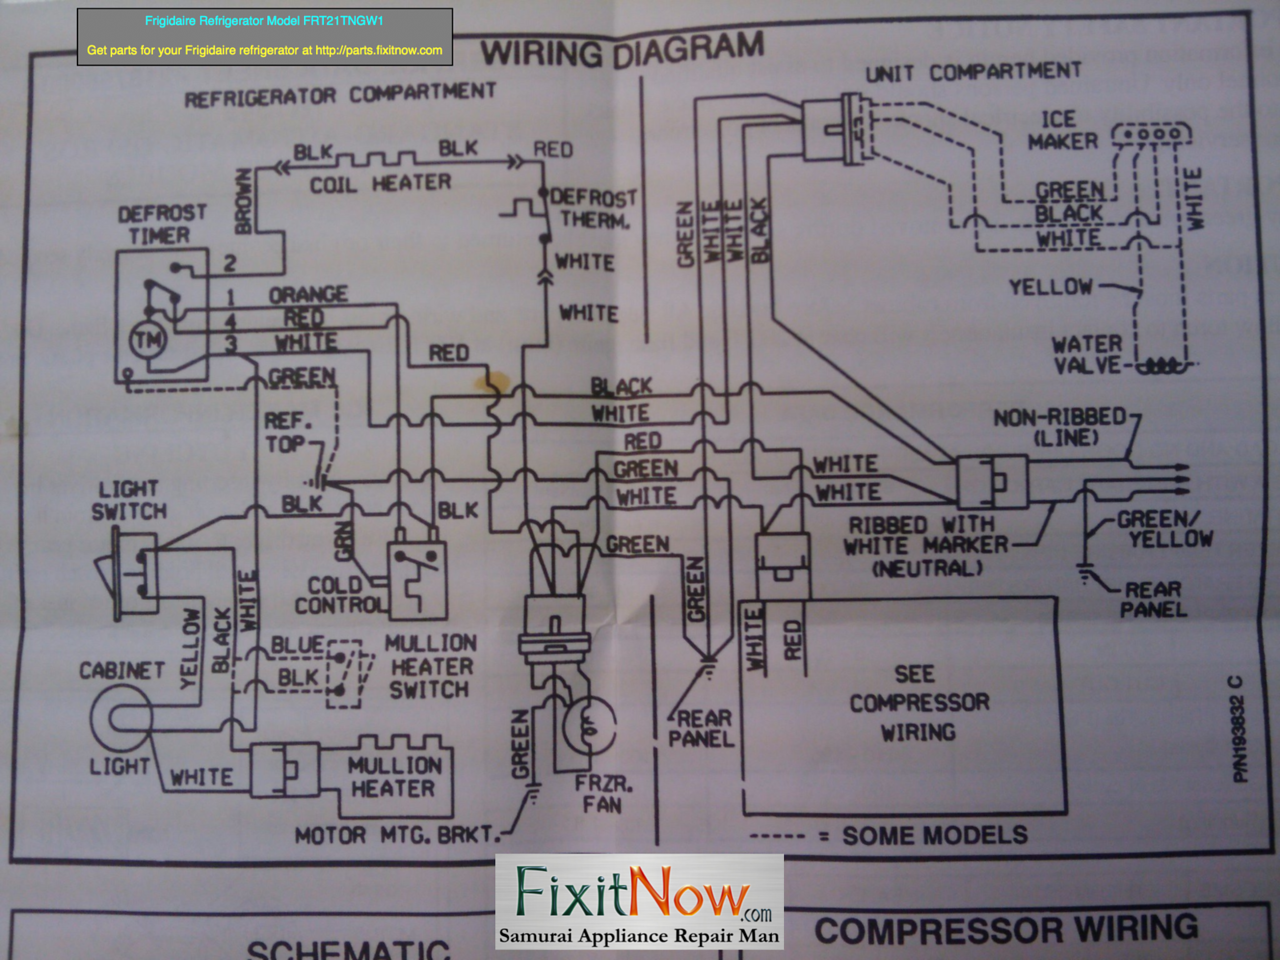 wiring diagrams and schematics appliantology rh appliantology smugmug com frigidaire wiring diagram refrigerator frigidaire wiring diagram refrigerator